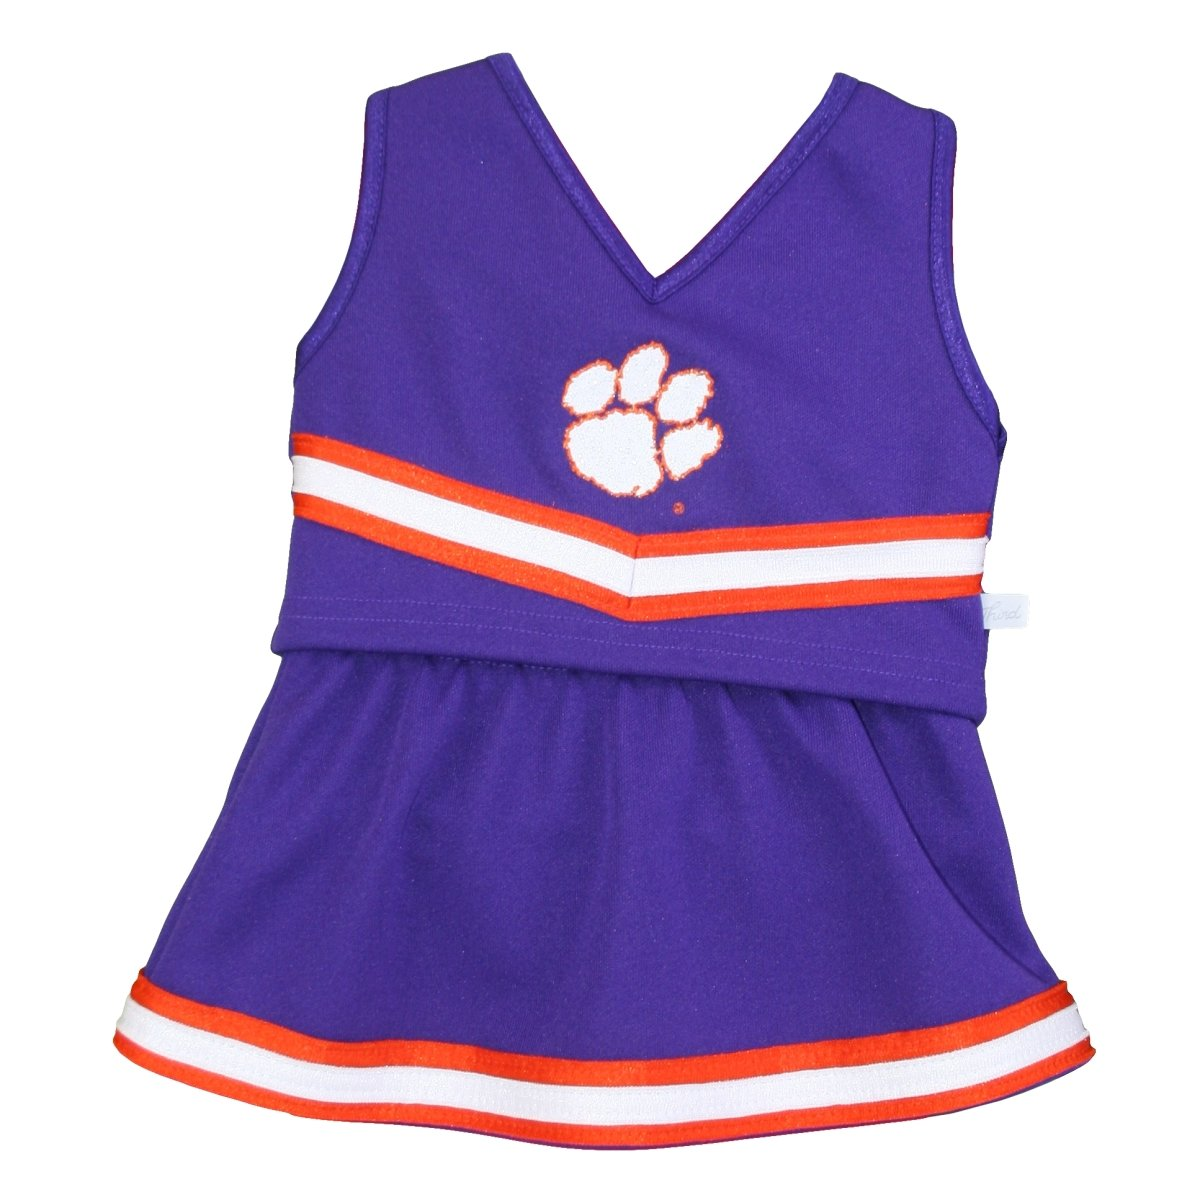 Clemson University 3 Piece Toddler Cheerleading with Paw - Mr. Knickerbocker